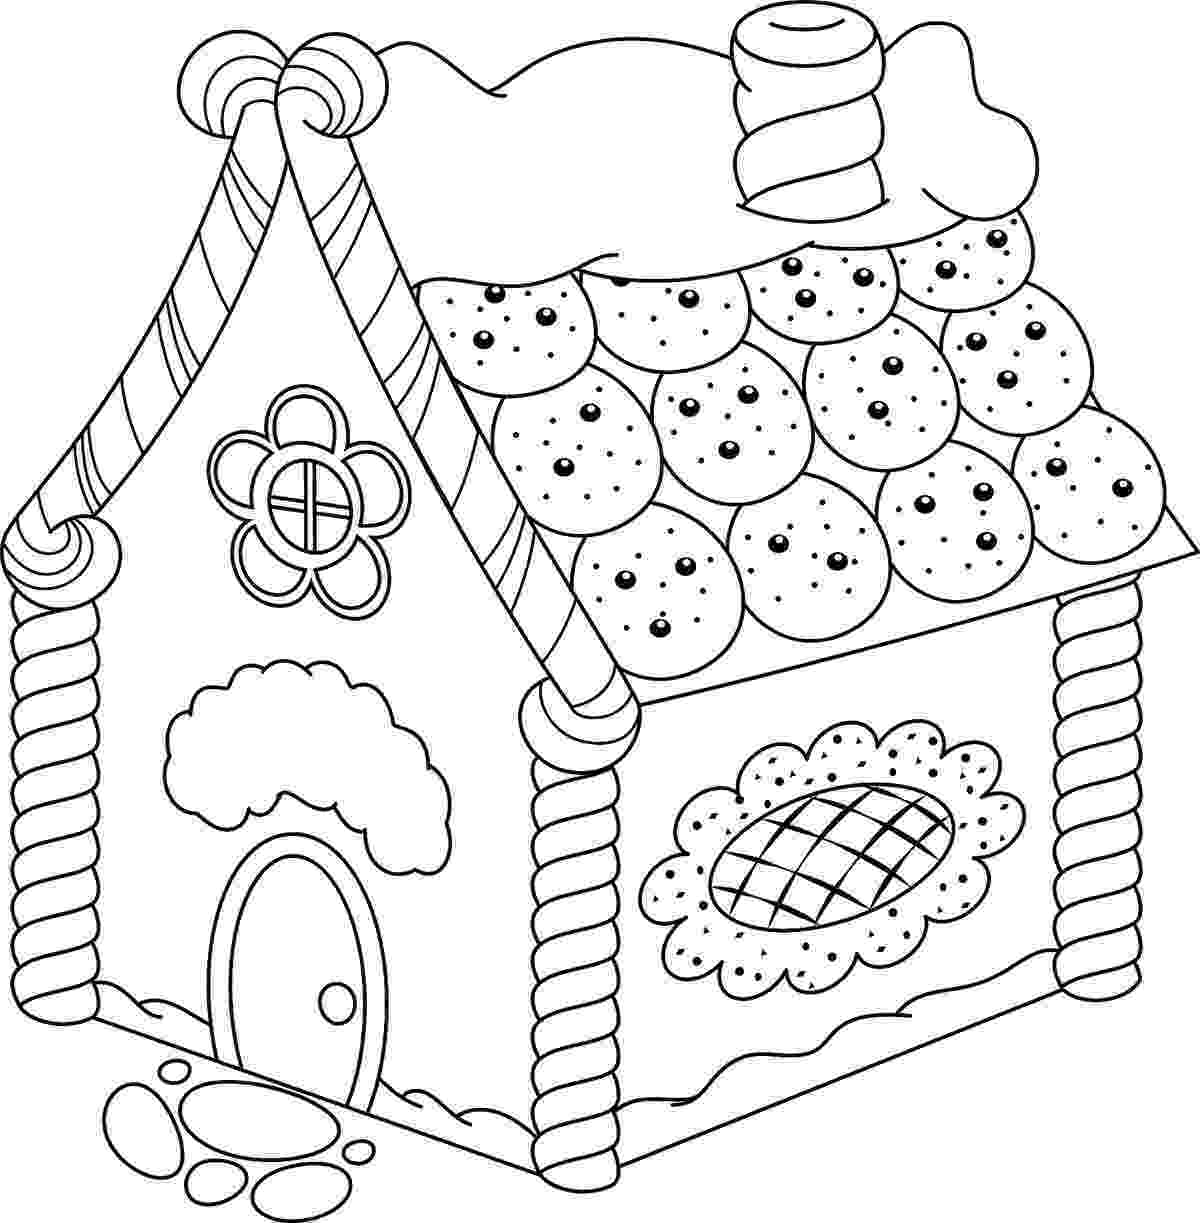 gingerbread house coloring page breathtaking gingerbread house coloring page pdf gingerbread page coloring house